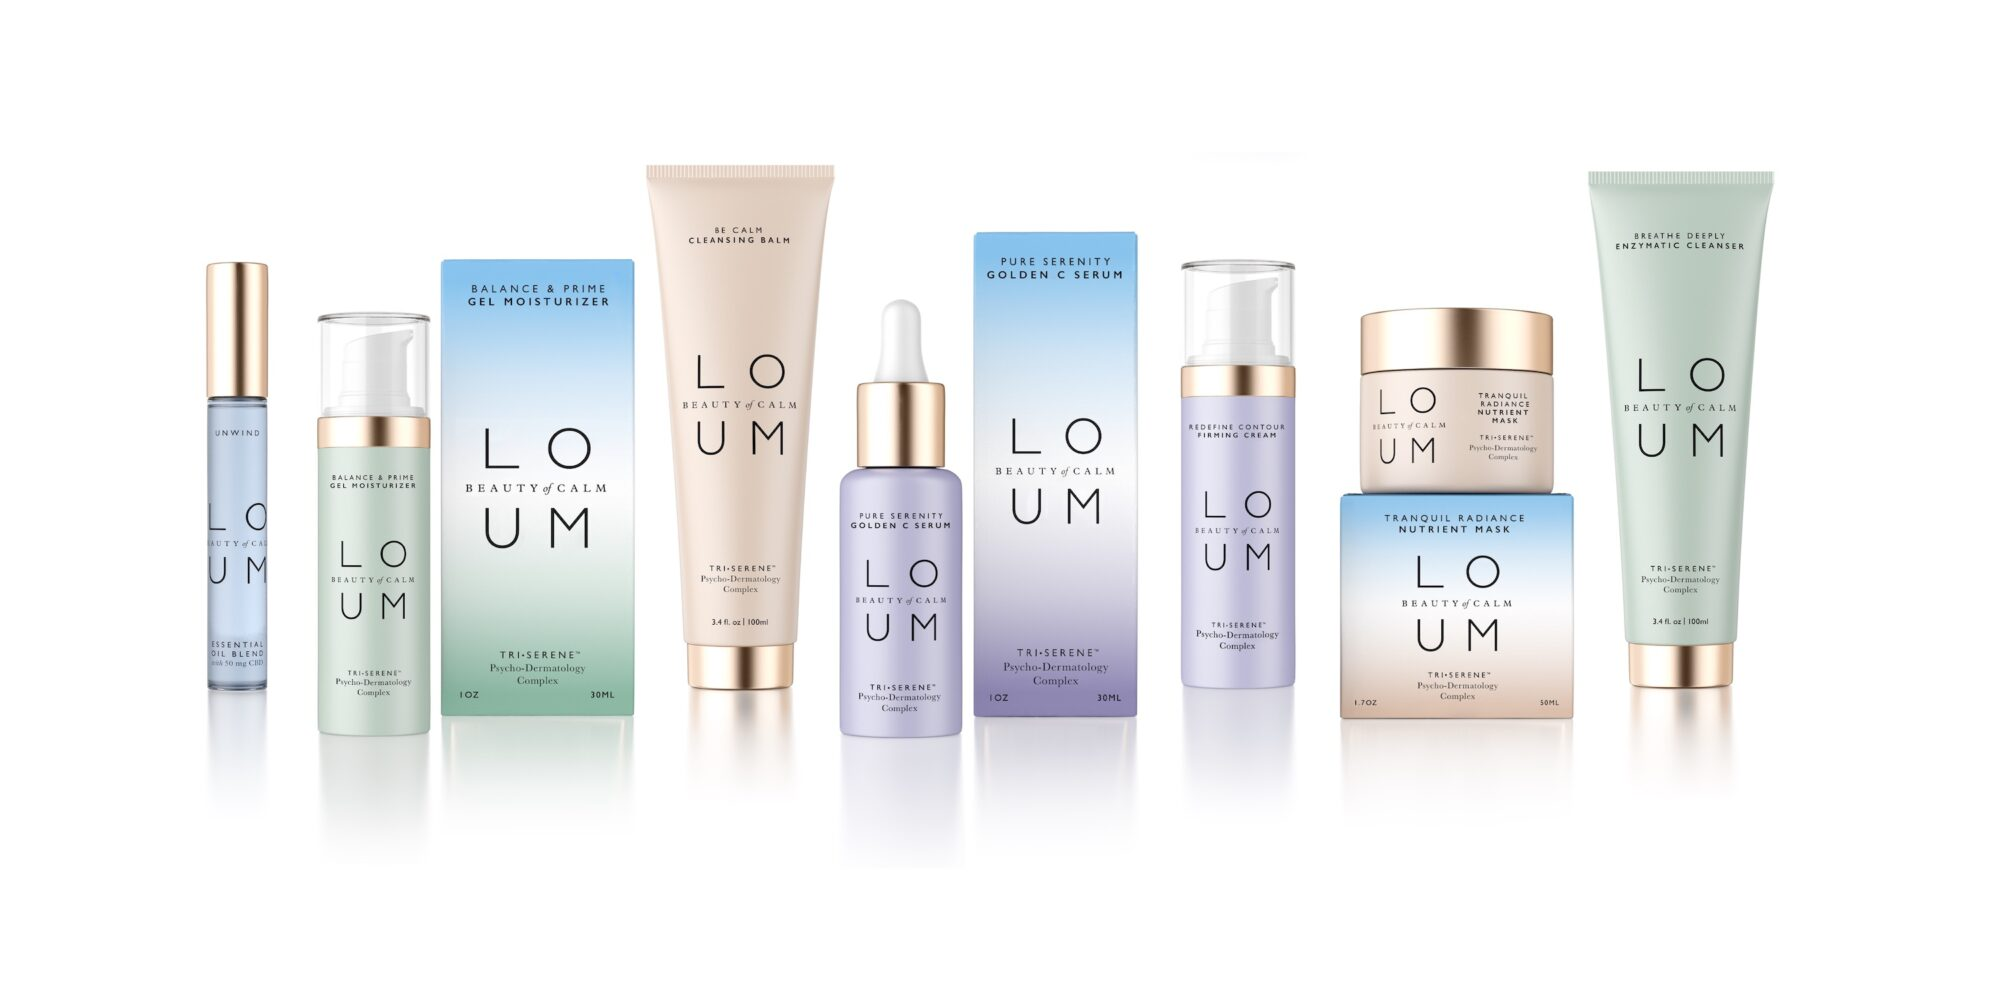 Present Life, A New Beauty And Wellness Company Led By Ex-Coty Execs, Launches Loum Beauty Of Calm To Combat The Effects Of Stress